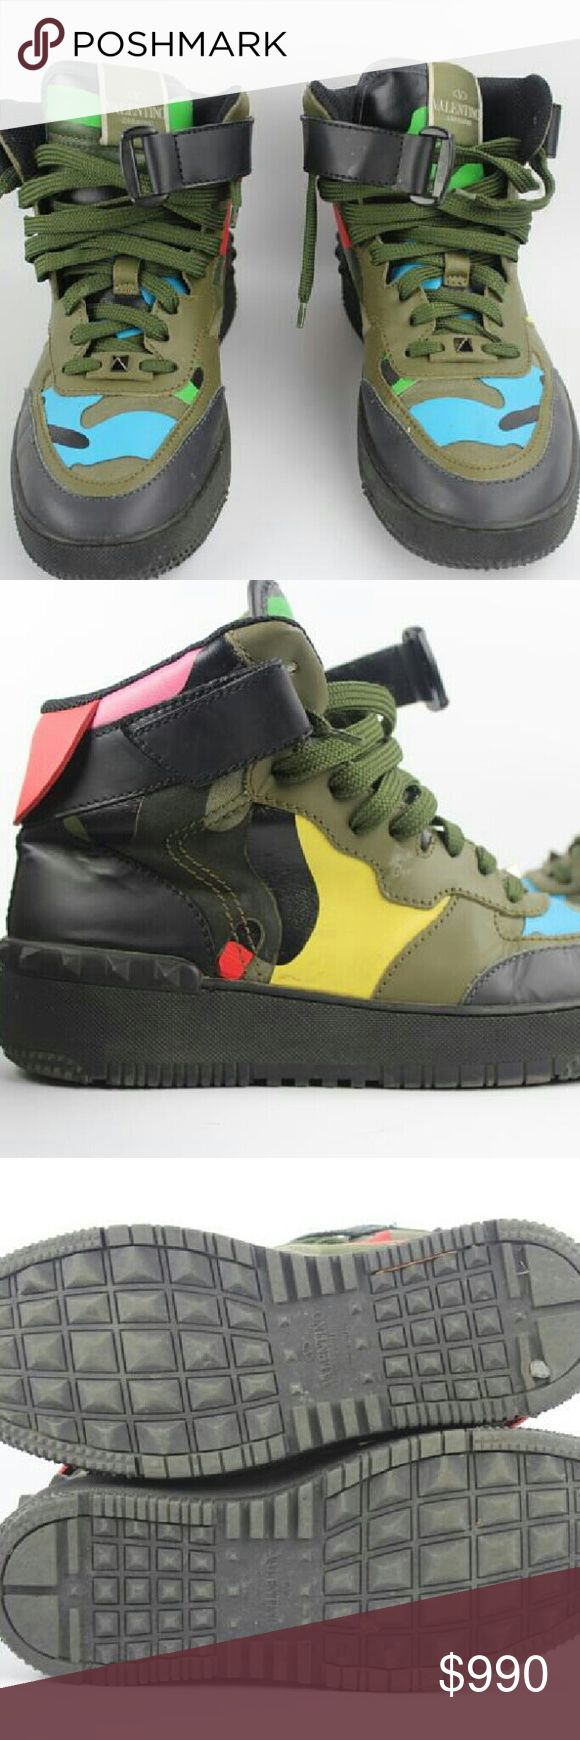 Rock Be Multi-color Sneakers Sz 40 Camouflage Valentino Rock Be Multi-color Camouflage High Top Sneakers Sz 40 (Women's 9.5 Men's) This item will ship immediately!! Previously owned. Made In: Italy Size: 40 (Women's 9.5 Men's 7) Signs of Wear: mild creases from wear throughout both pairs. Light scuffs on leather uppers. Soles display mild scuffs and scratches from wear. Minimal markings on leather uppers. Lights scuffs on insoles. Overall in lovely condition. Please review measurements and…